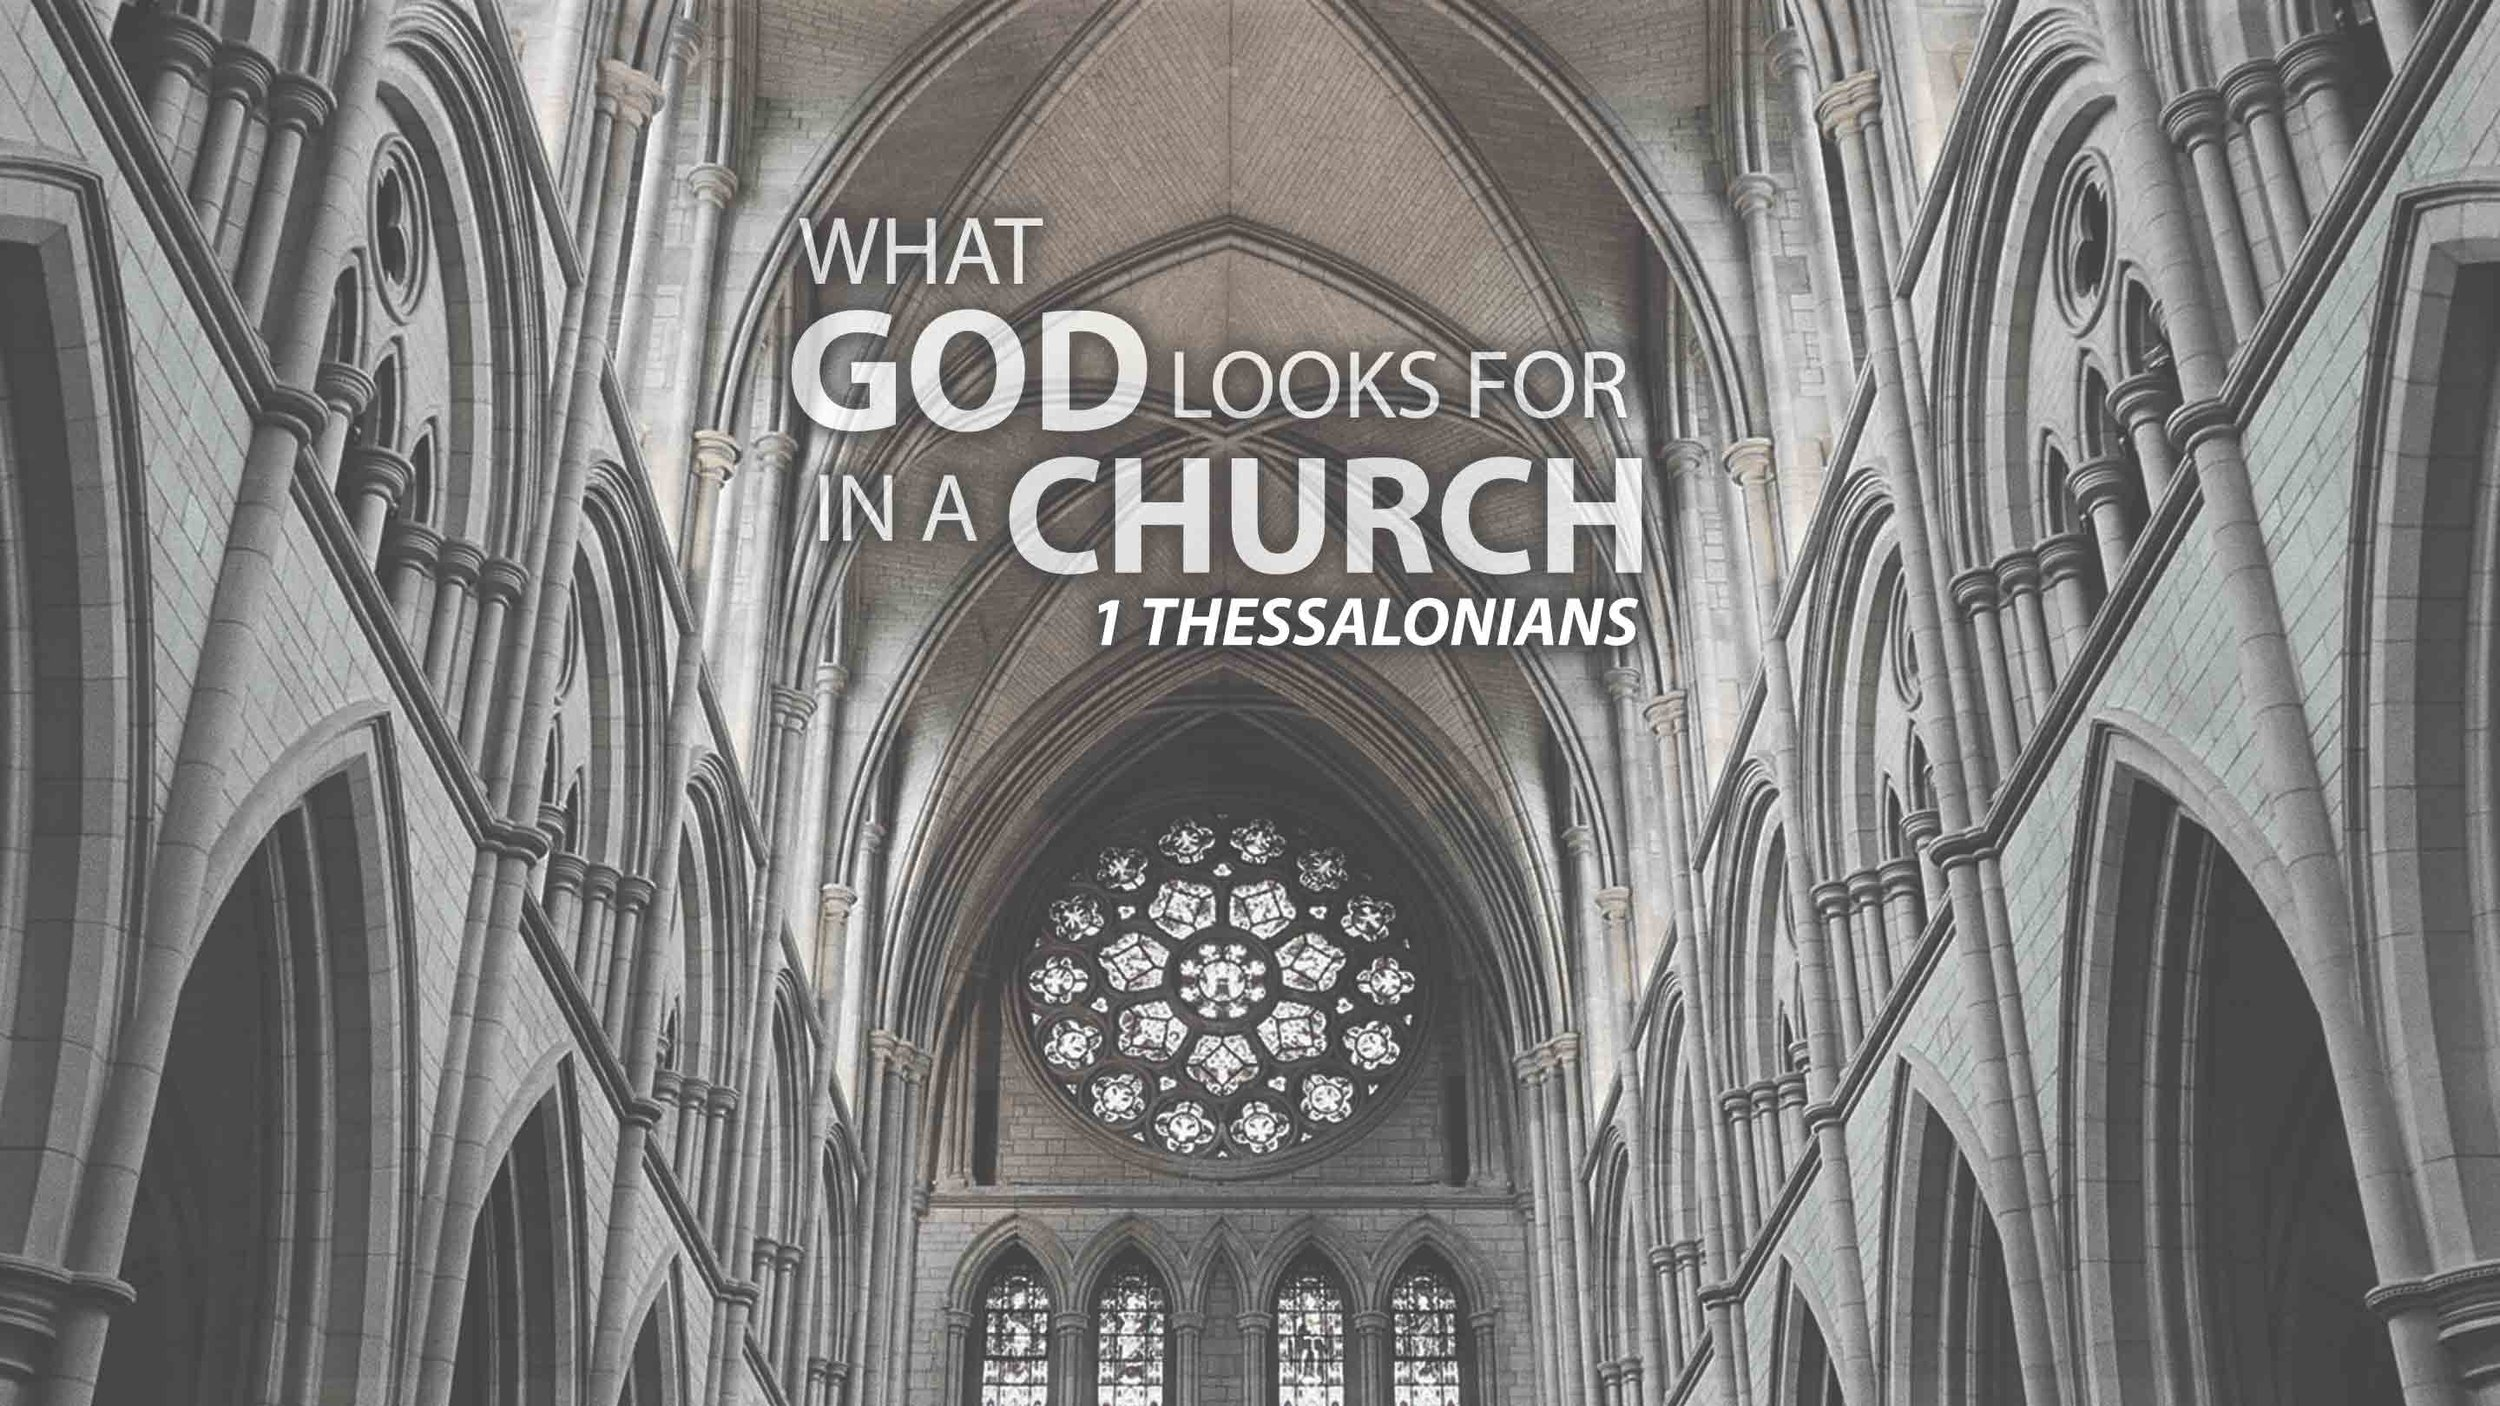 What-God-Looks-For-In-A-Church-title.jpg